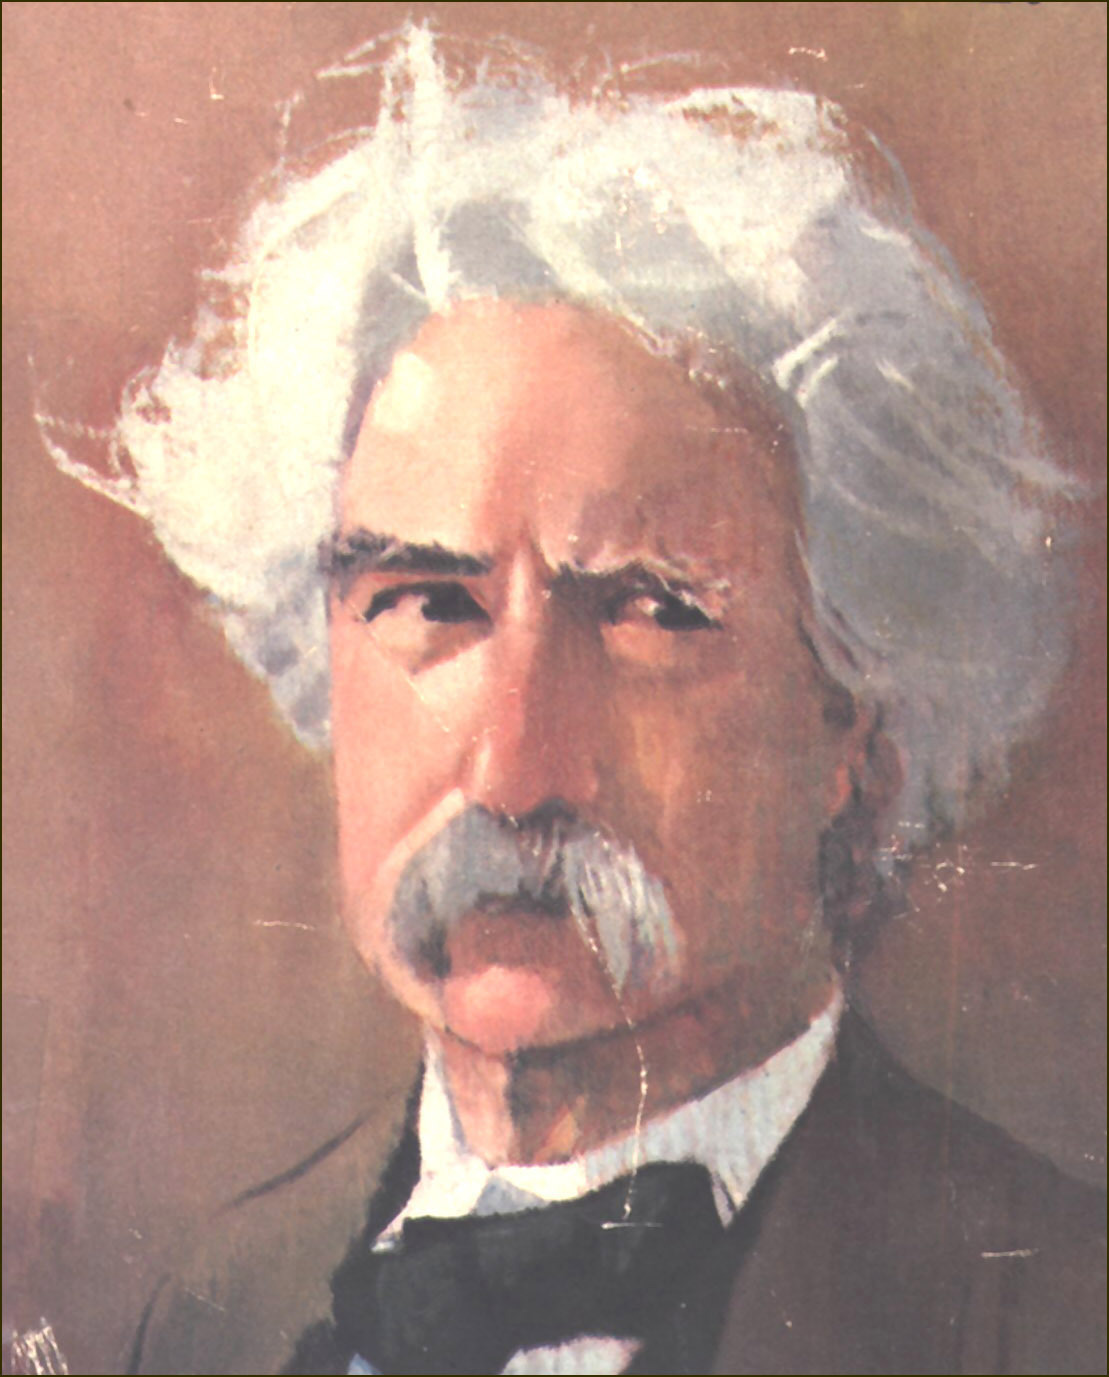 mark twain essays satire the lowest animal a satirical essay by hd image of mark twain essays satire mark twain essays satire essay com